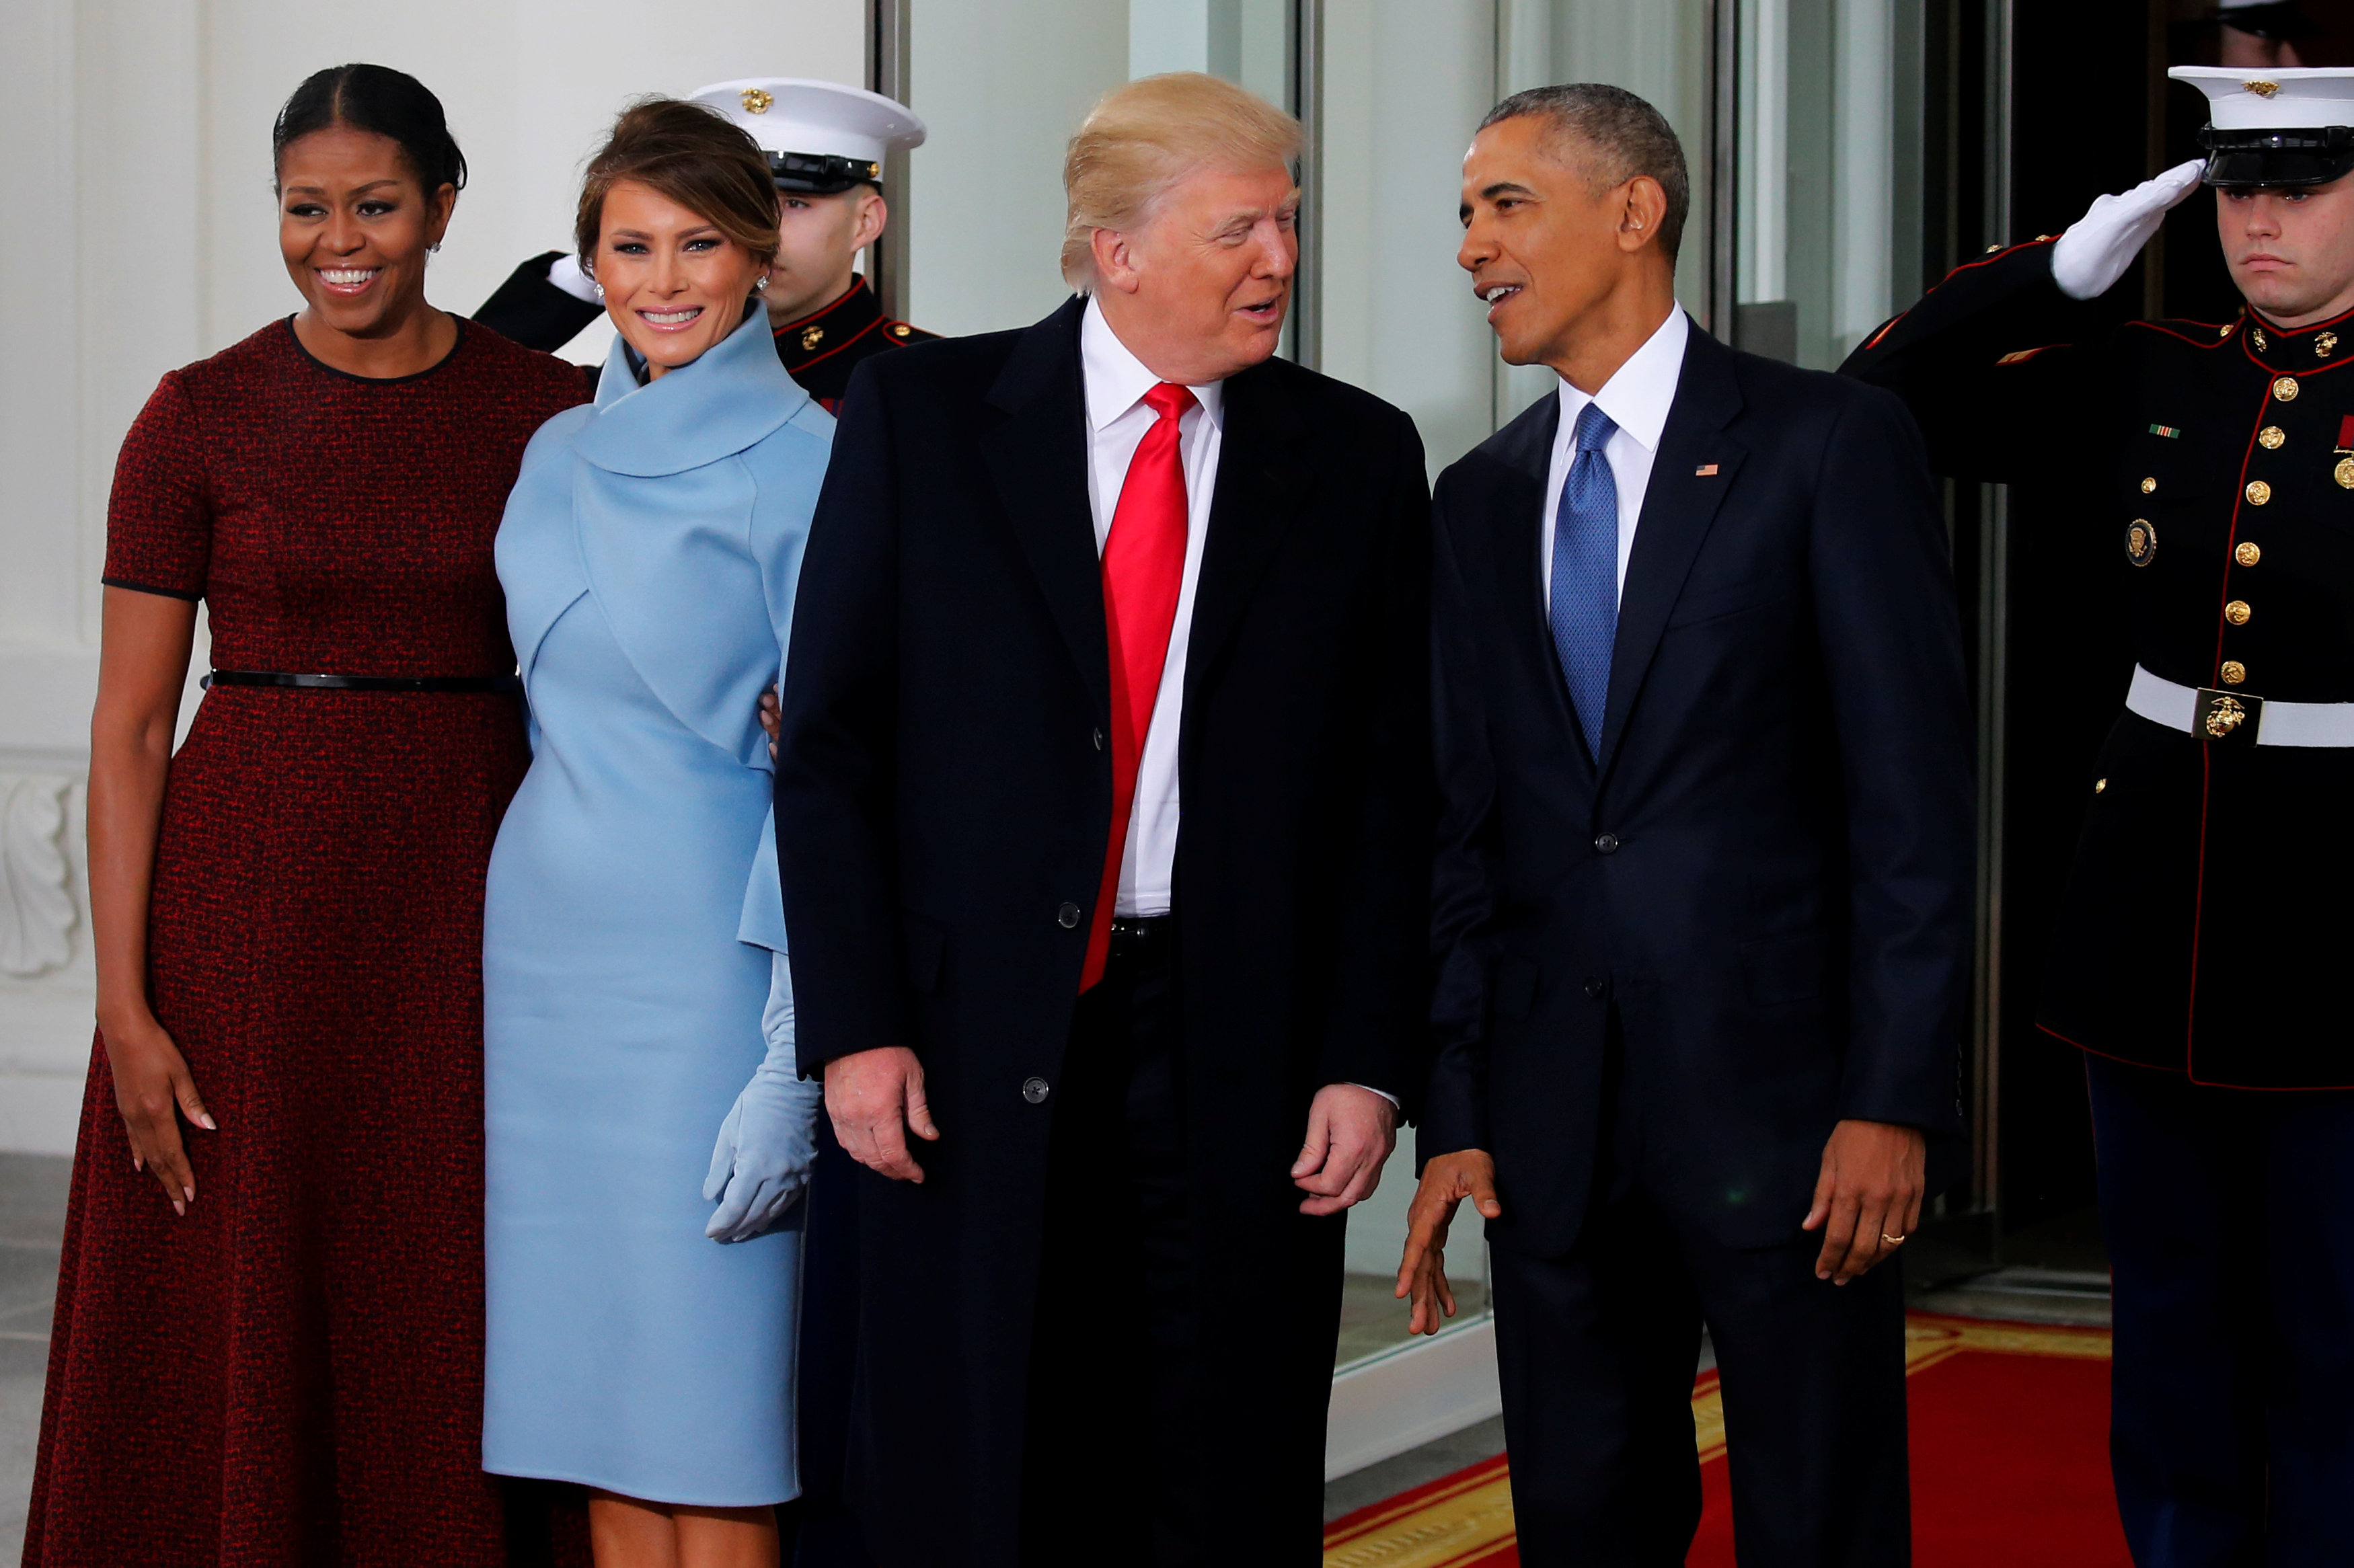 Former U.S. President Barack Obama (R) and former first lady Michelle Obama (L) greet then U.S. President-elect Donald Trump and his wife Melania for tea before the inauguration at the White House in Washington, U.S. January 20, 2017. REUTERS/Jonathan Ernst